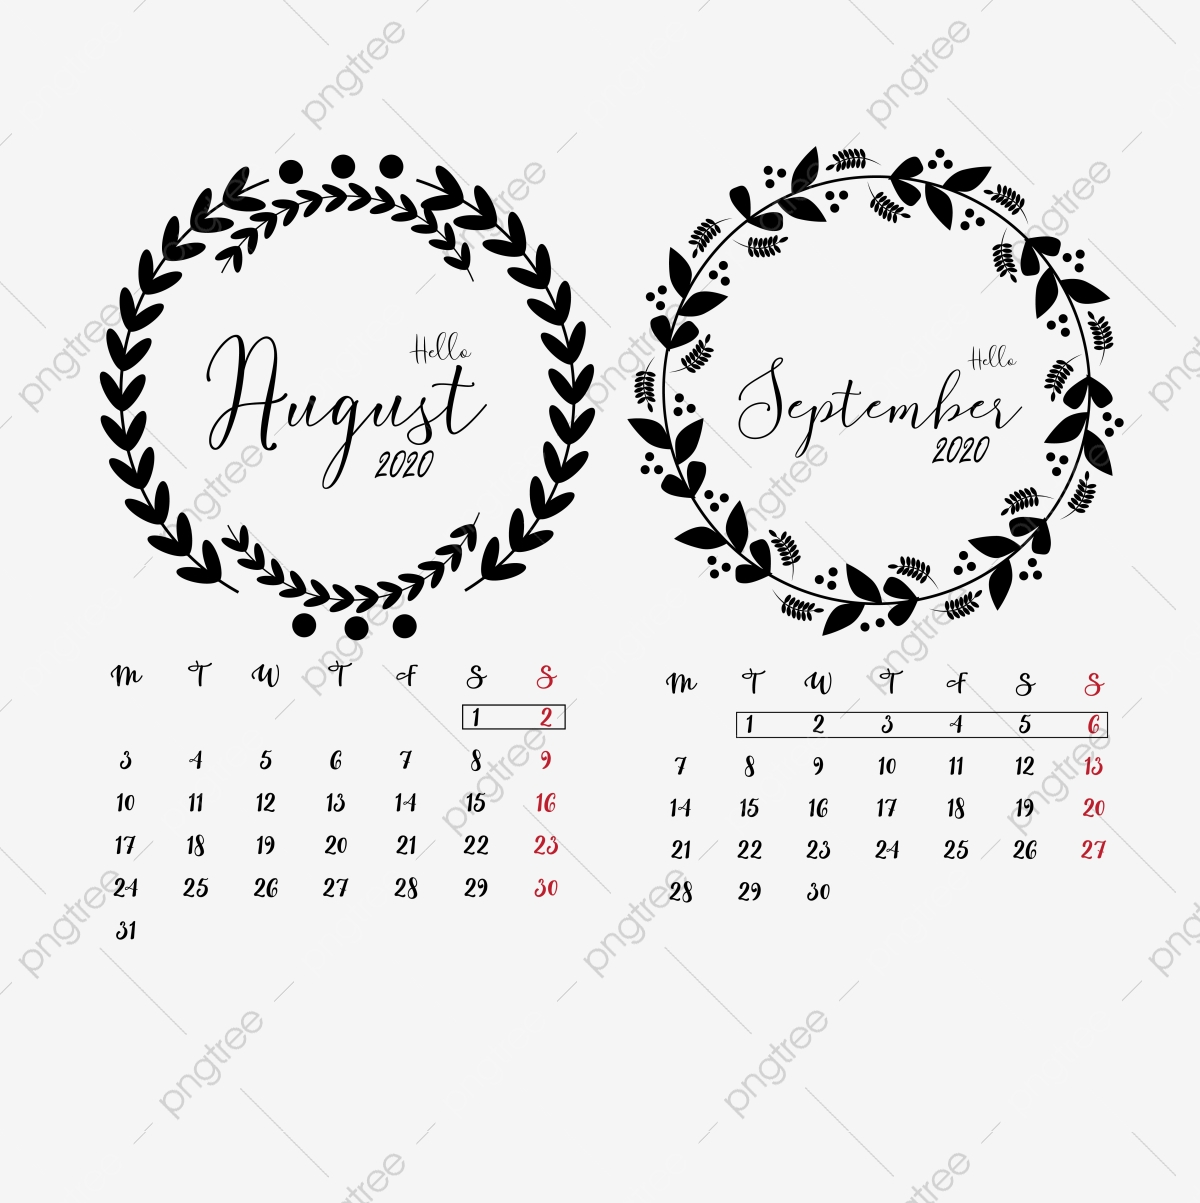 August And September 2020 Calendar Clipart Vector Png Element Floral Wreathes Wreathes Journal 2020 Calendar Png And Vector With Transparent Background For Free Download